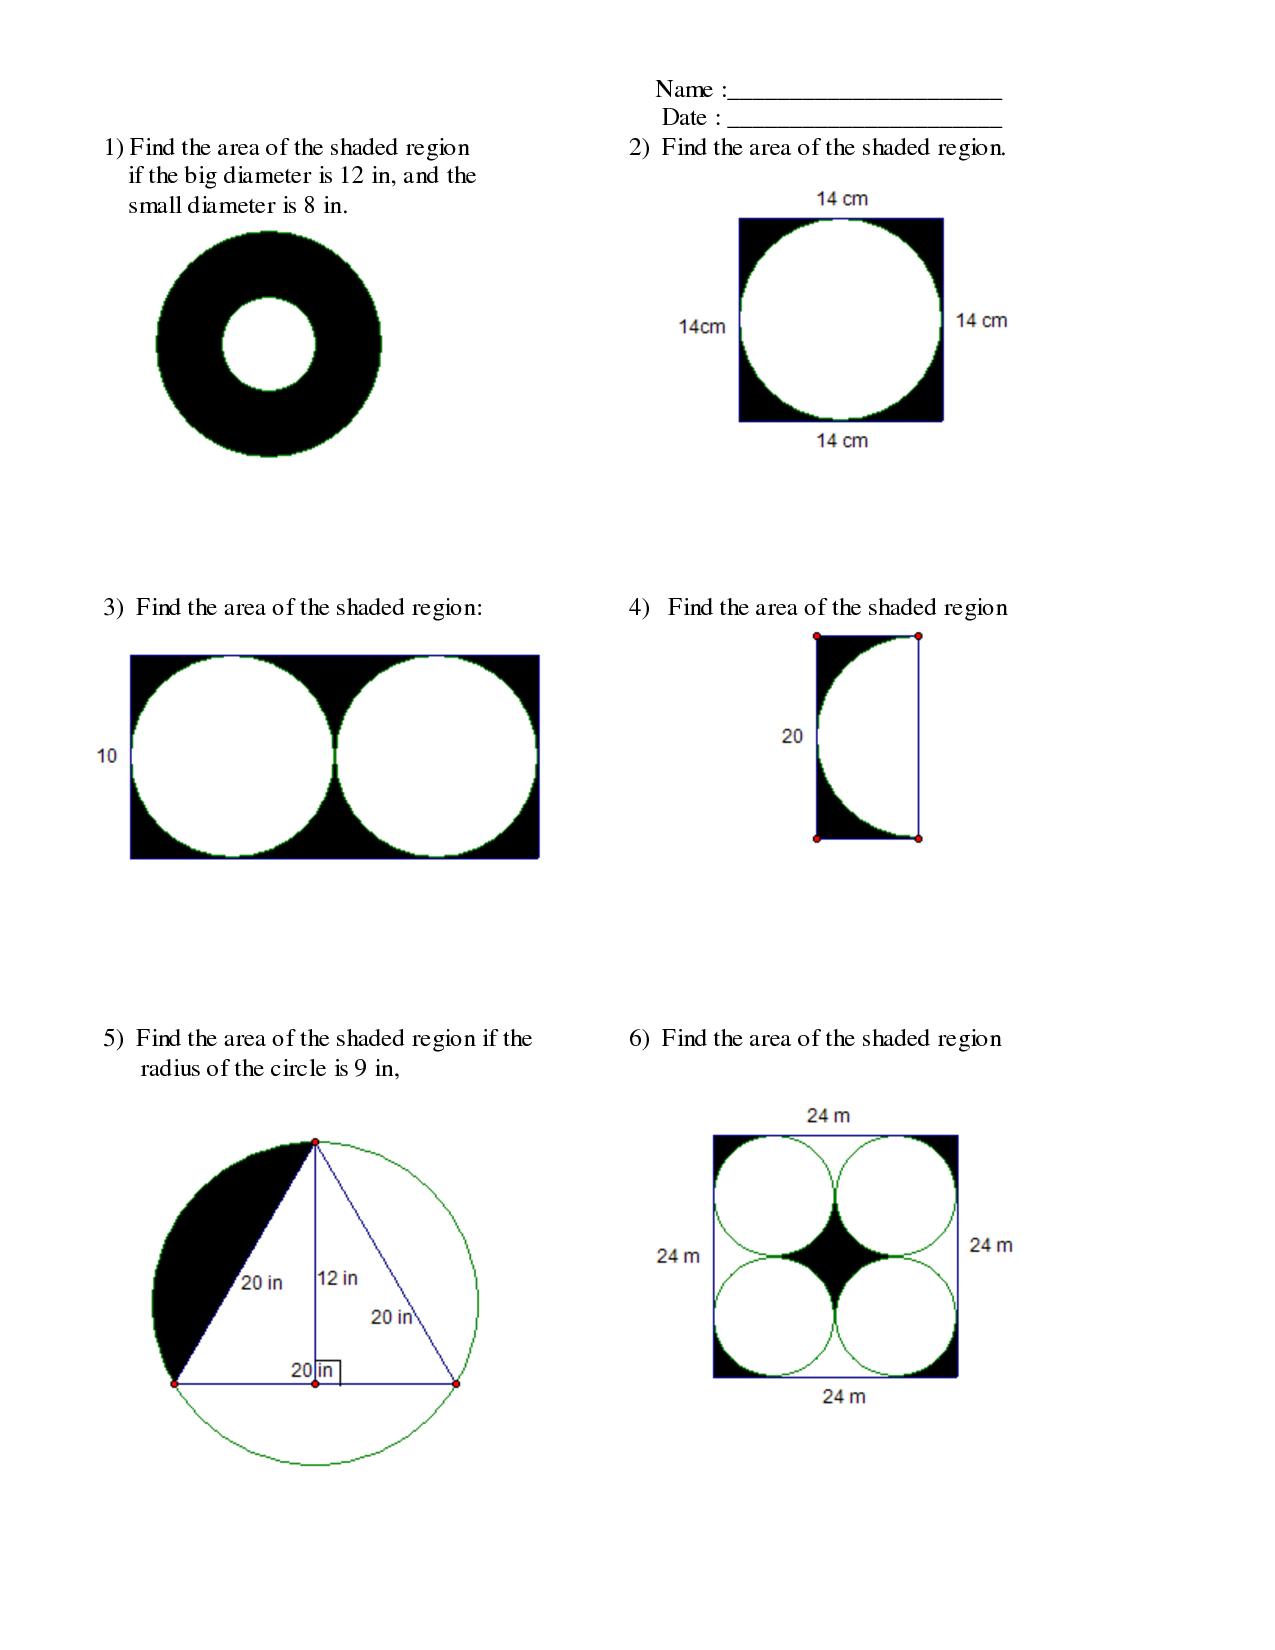 Shading Worksheet Png - Area Of A Shaded Region Of A Circle Worksheet - area of a shaded ...